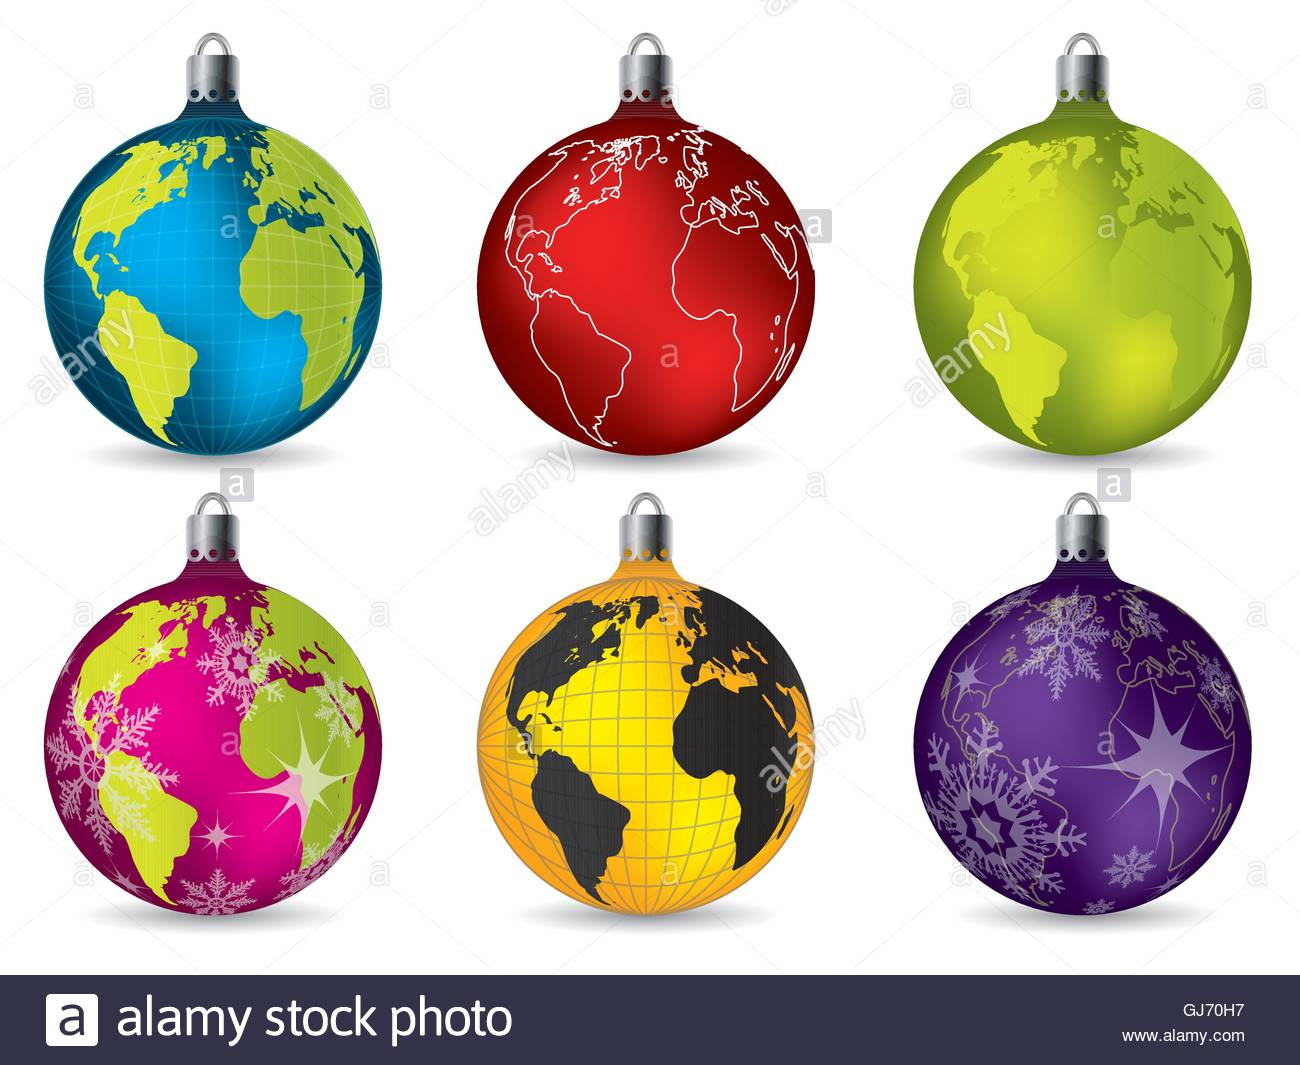 World Map Decorations Shiny Christmas Decorations With World Map Stock Vector Art